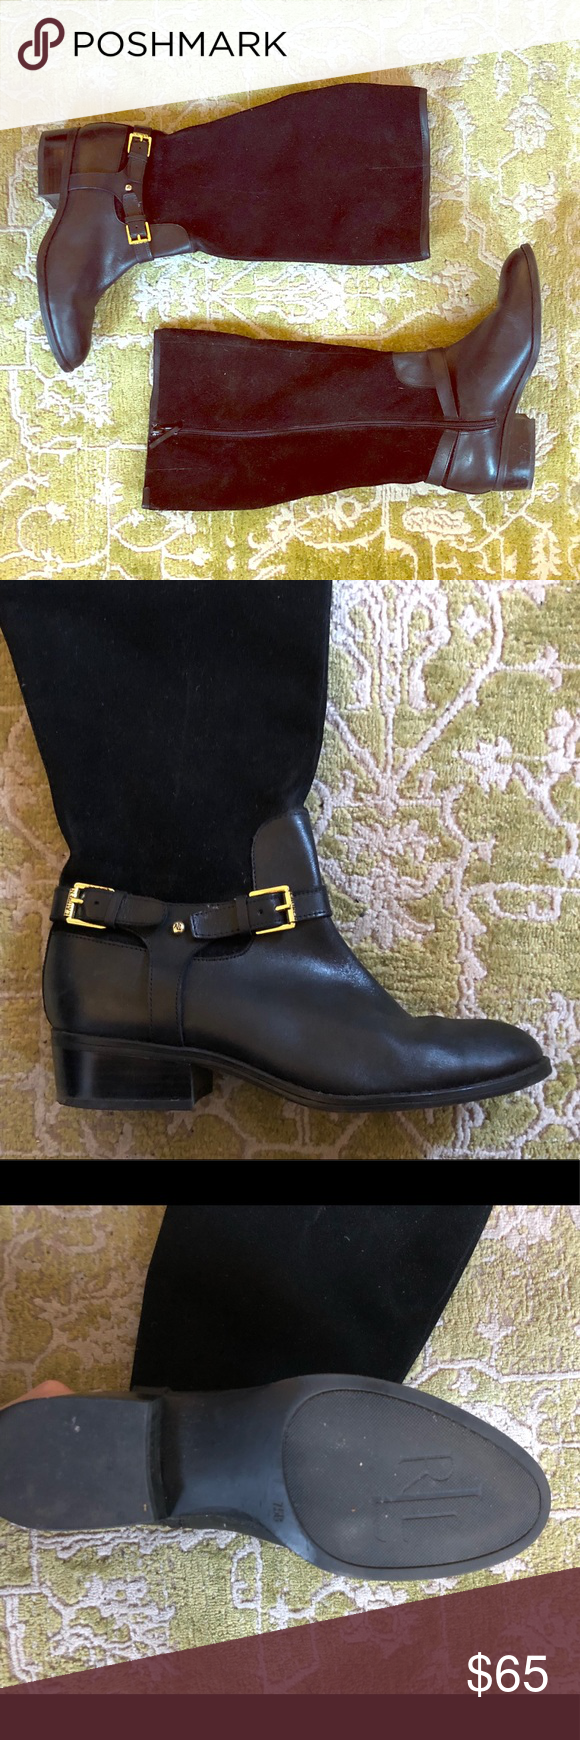 907f54ff5ed Ralph Lauren Riding Boots Ralph Lauren wide calf riding boots -Leather and  suede mix for